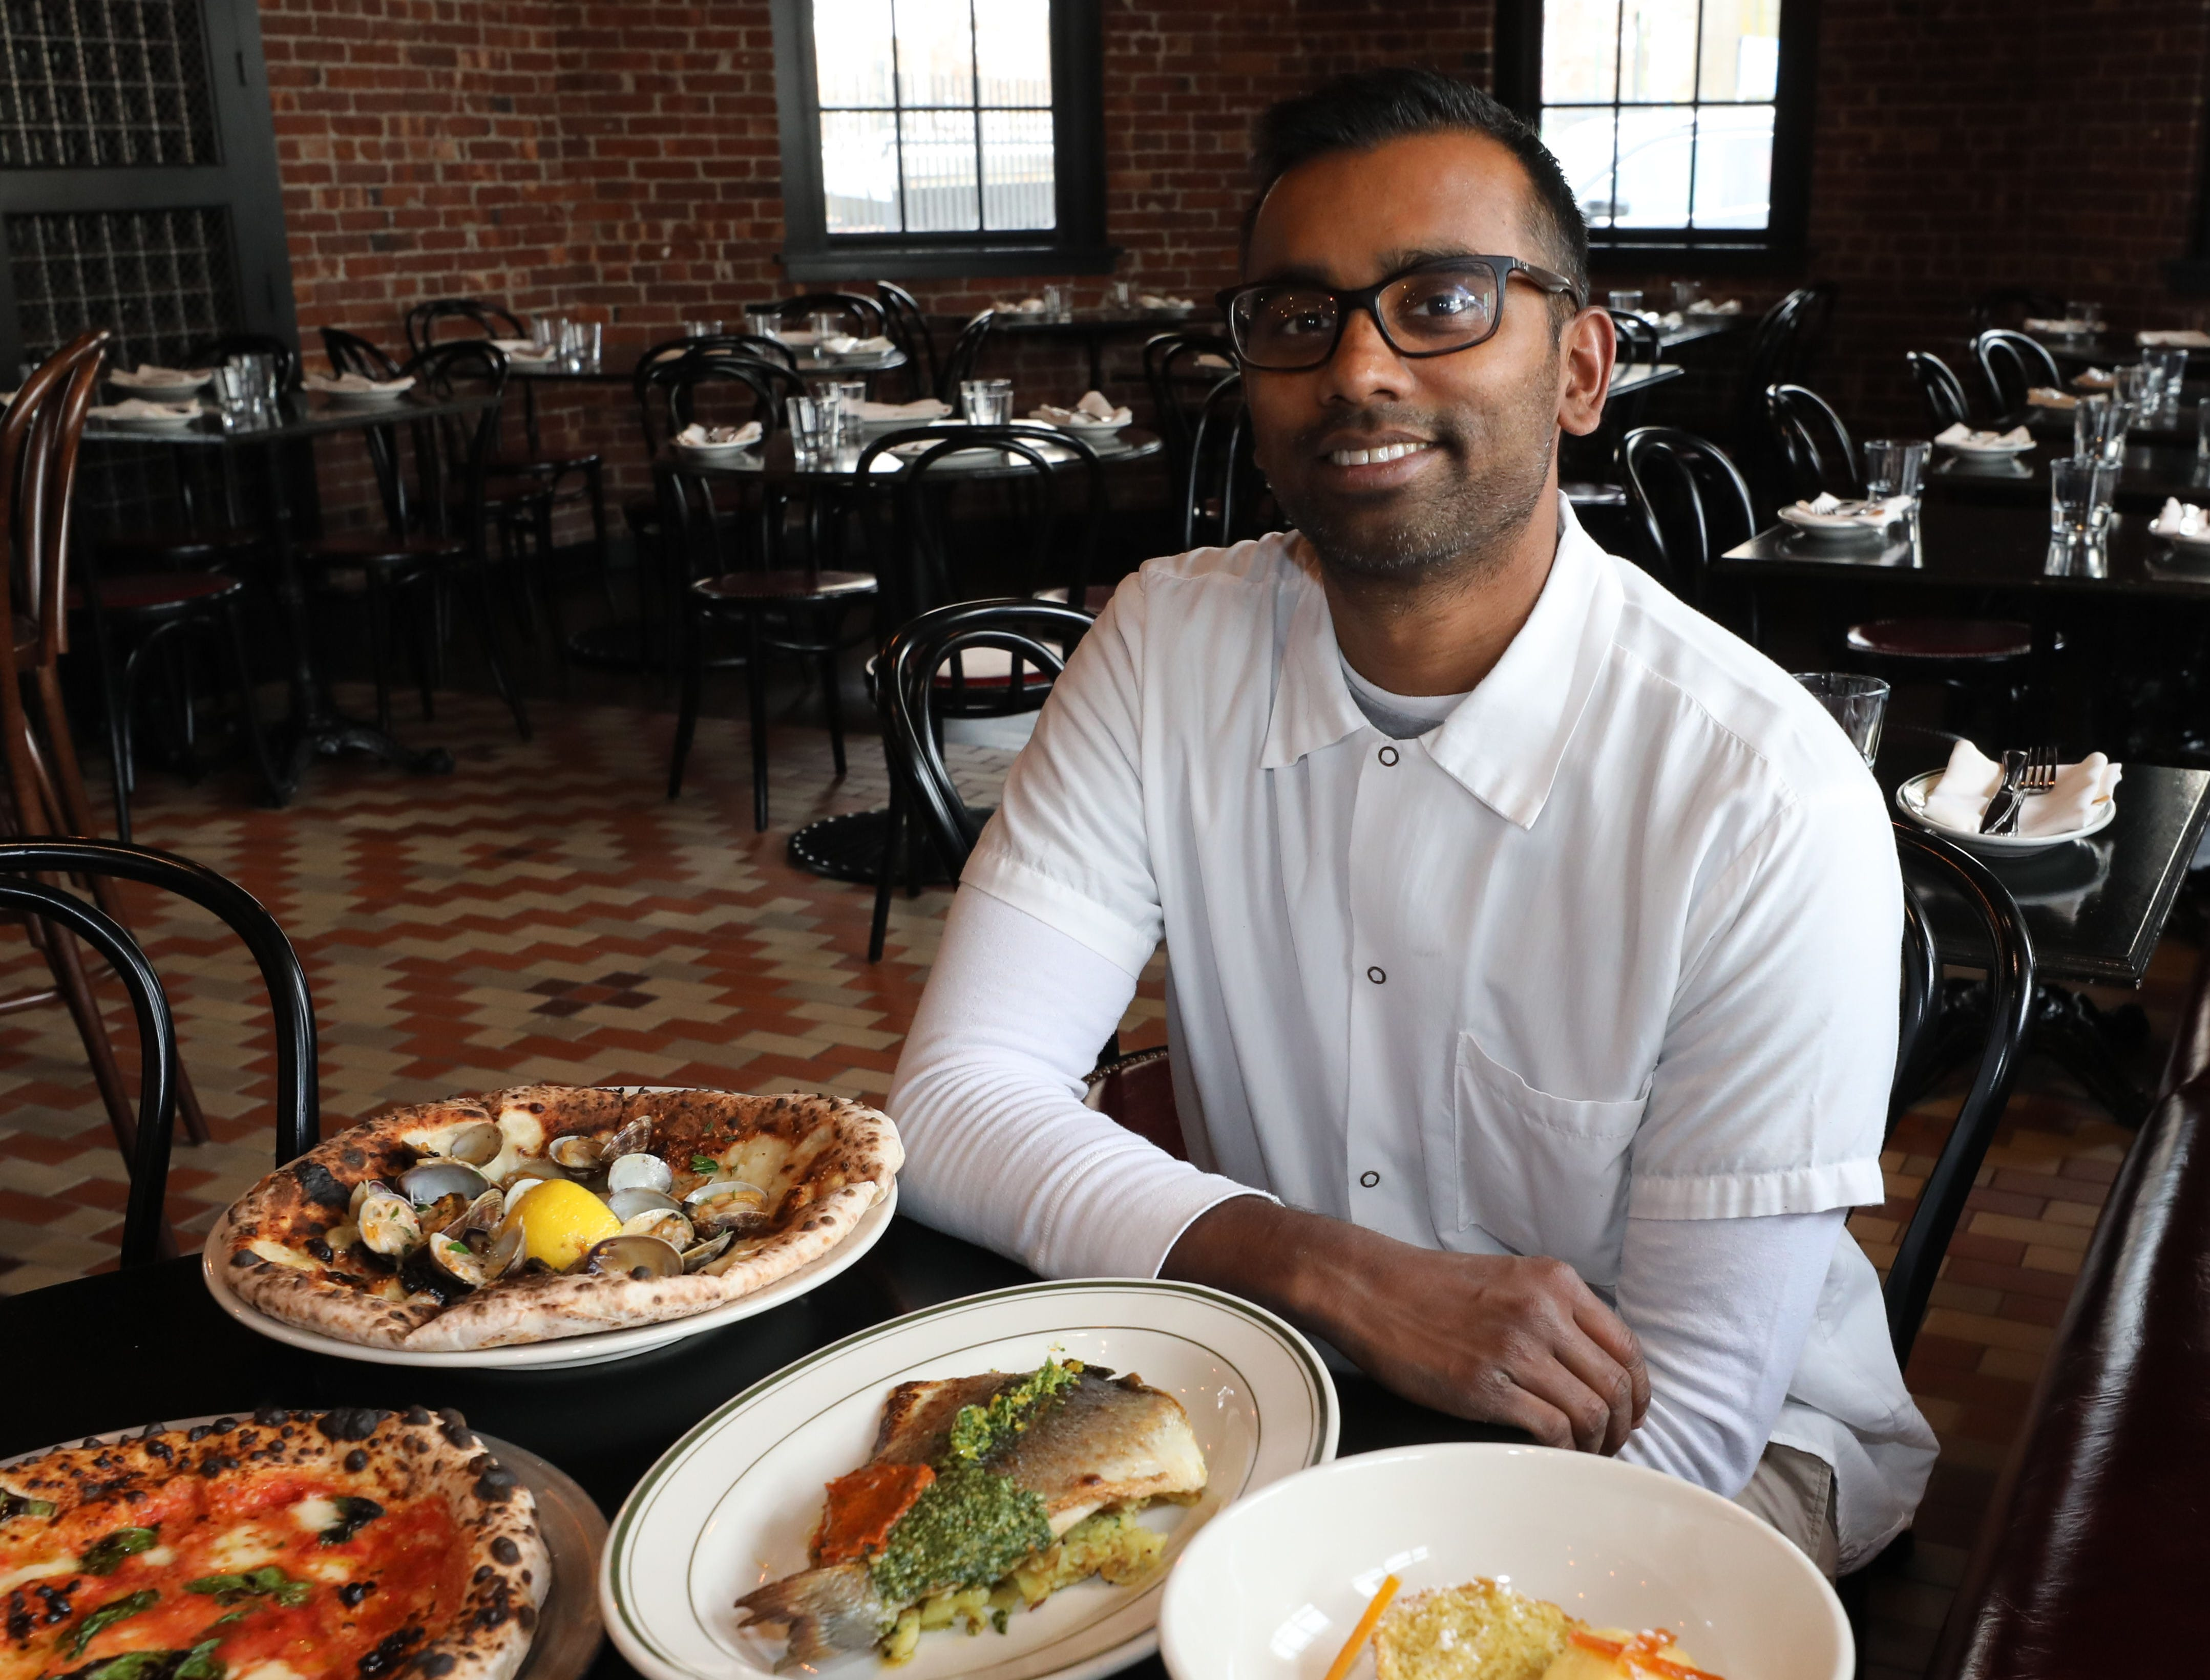 Executive Chef Mogan Anthony from Village Social Restaurant Group, is pictured with some of the food at Locali Pizza Bar and Kitchen in the Mount Kisco, March 8, 2019.